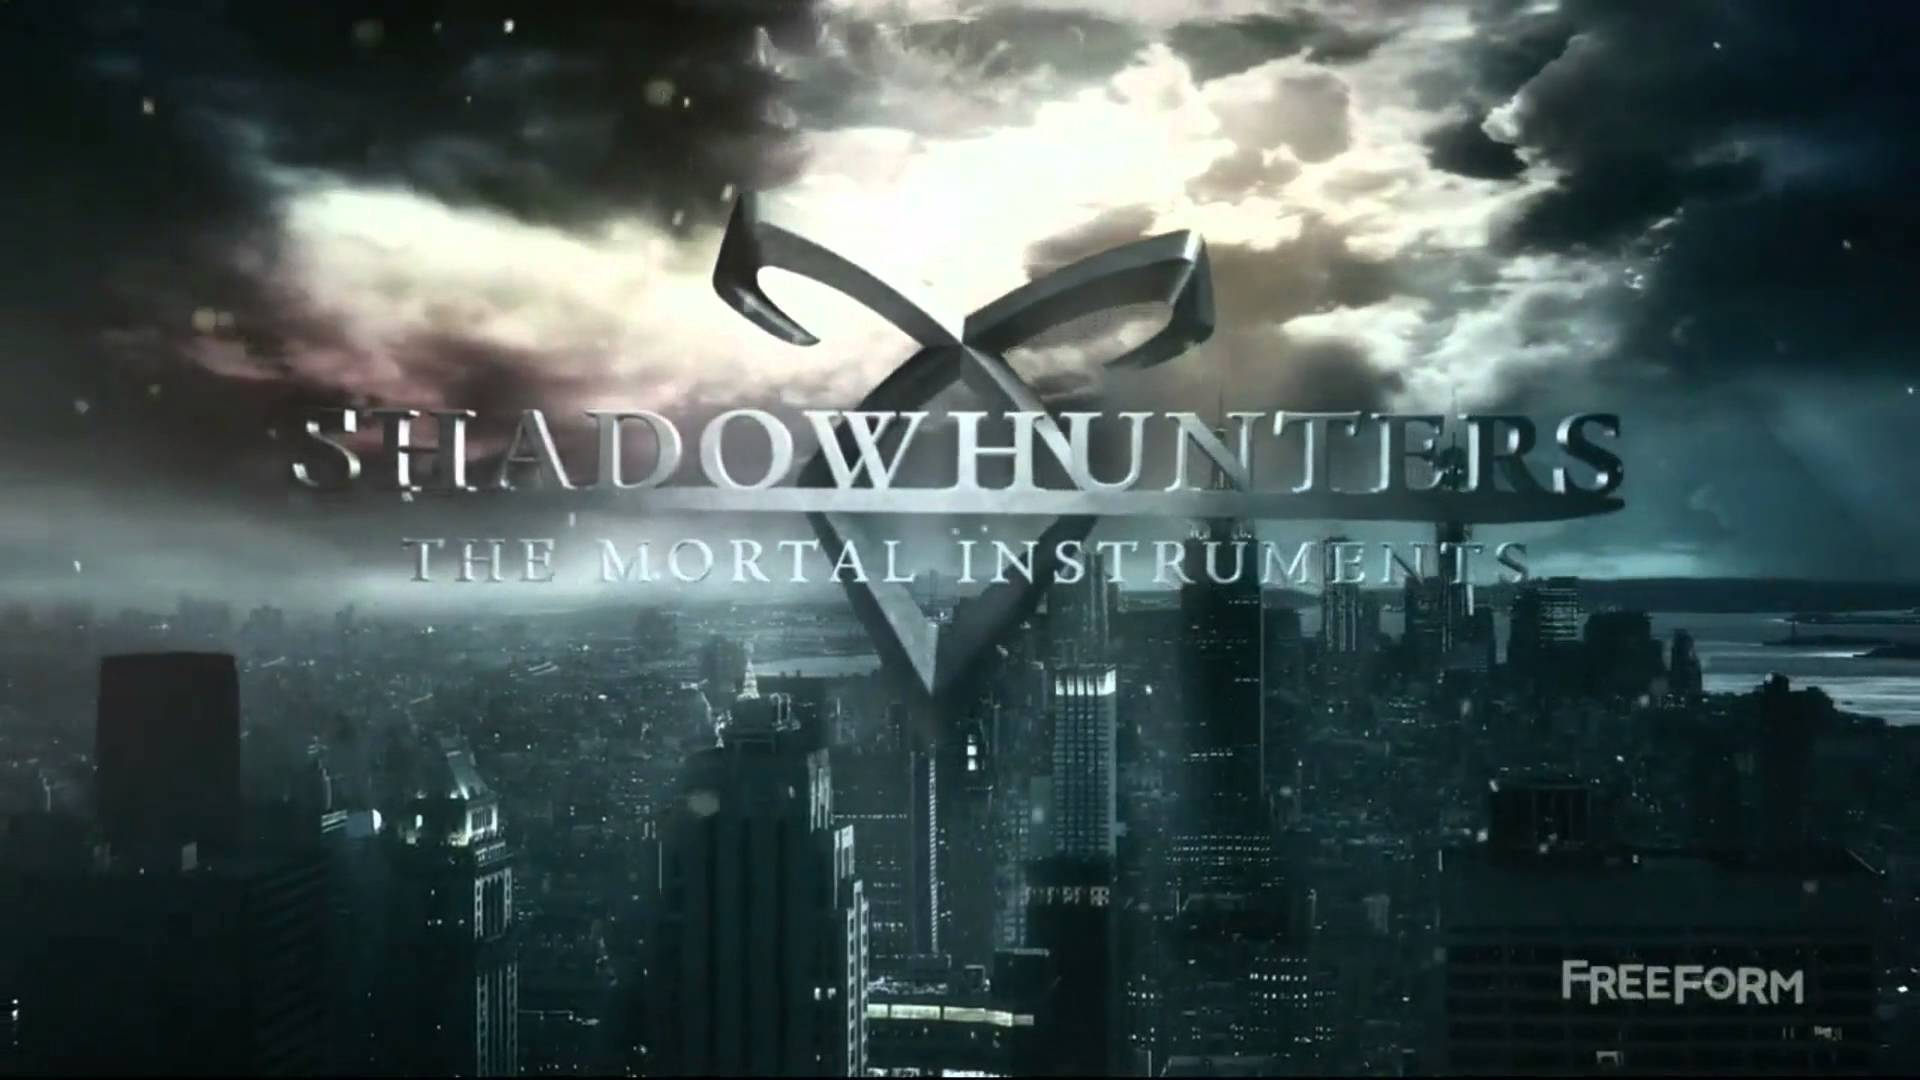 shadowhunters wallpapers - wallpaper cave